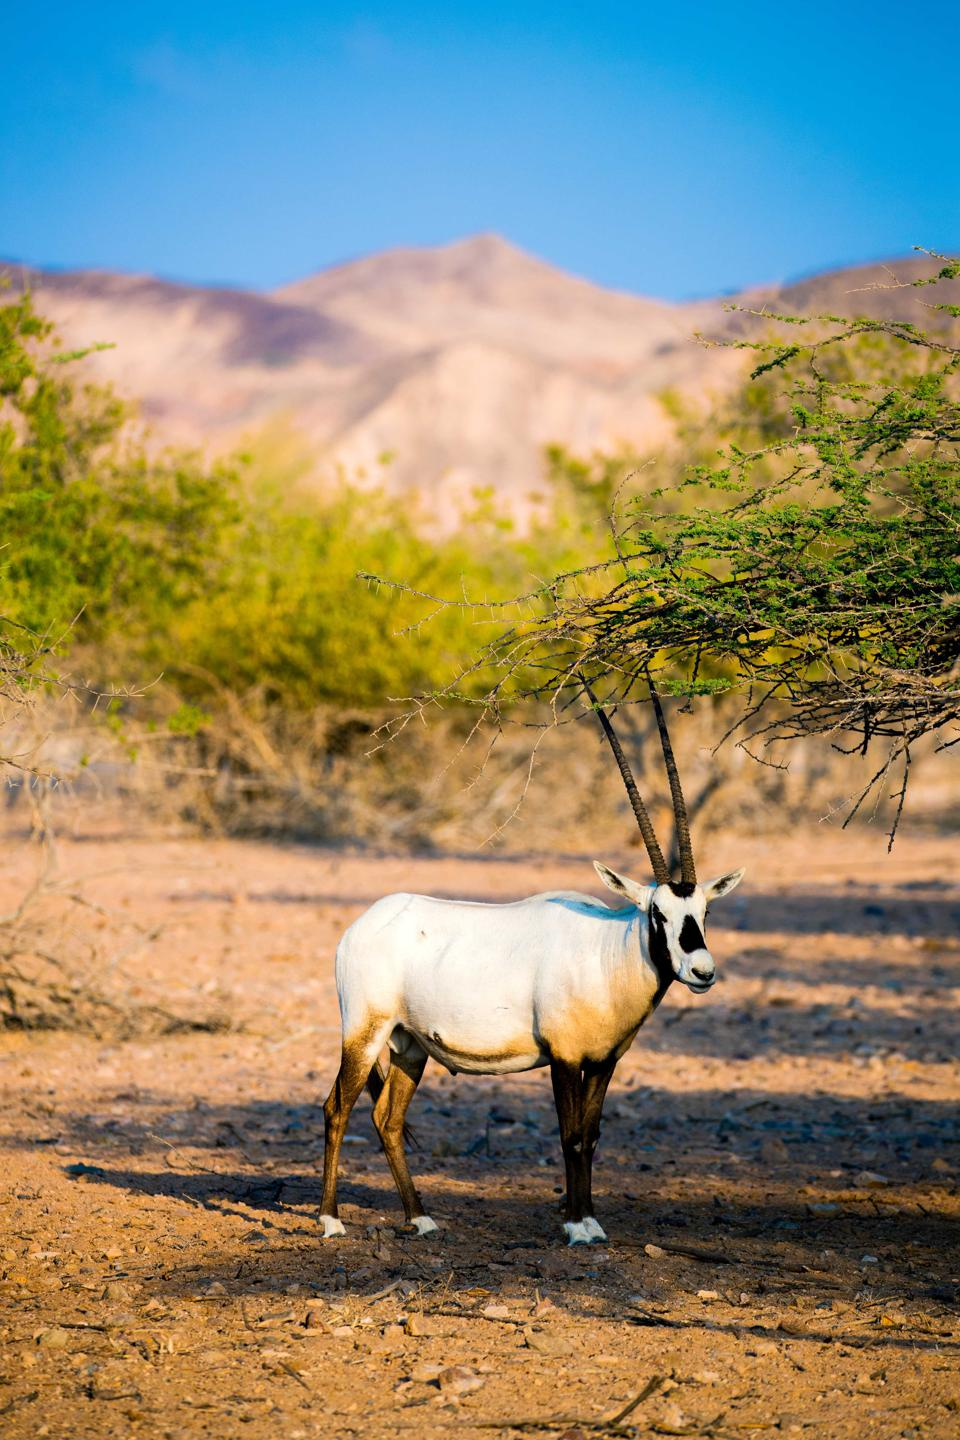 The long-horned gazelle stands in front of some pale green trees and a mountain.